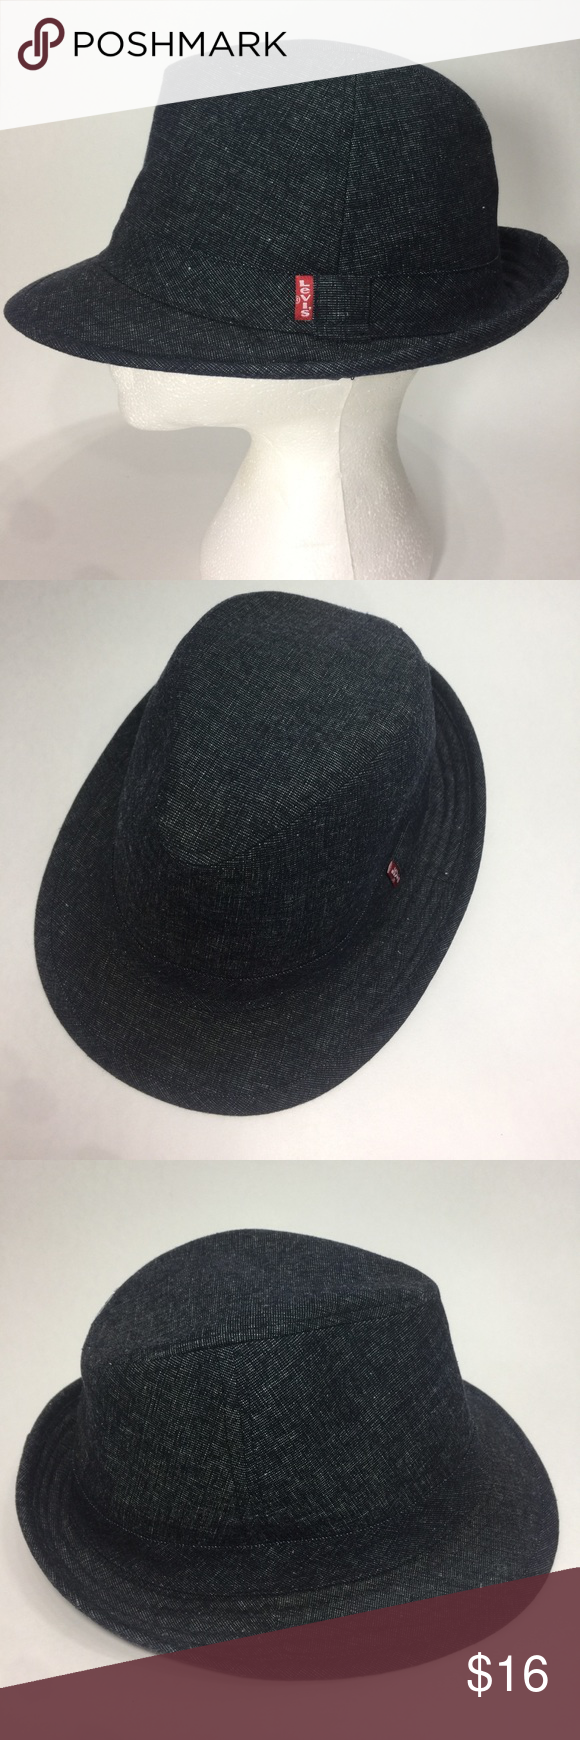 ed0e24abdc80f Levi s Red Tab Denim Fedora Hat Blue Unisex Levi s red tab cotton denim  fedora hat one size unisex. 22-1 4 inches around circumference.